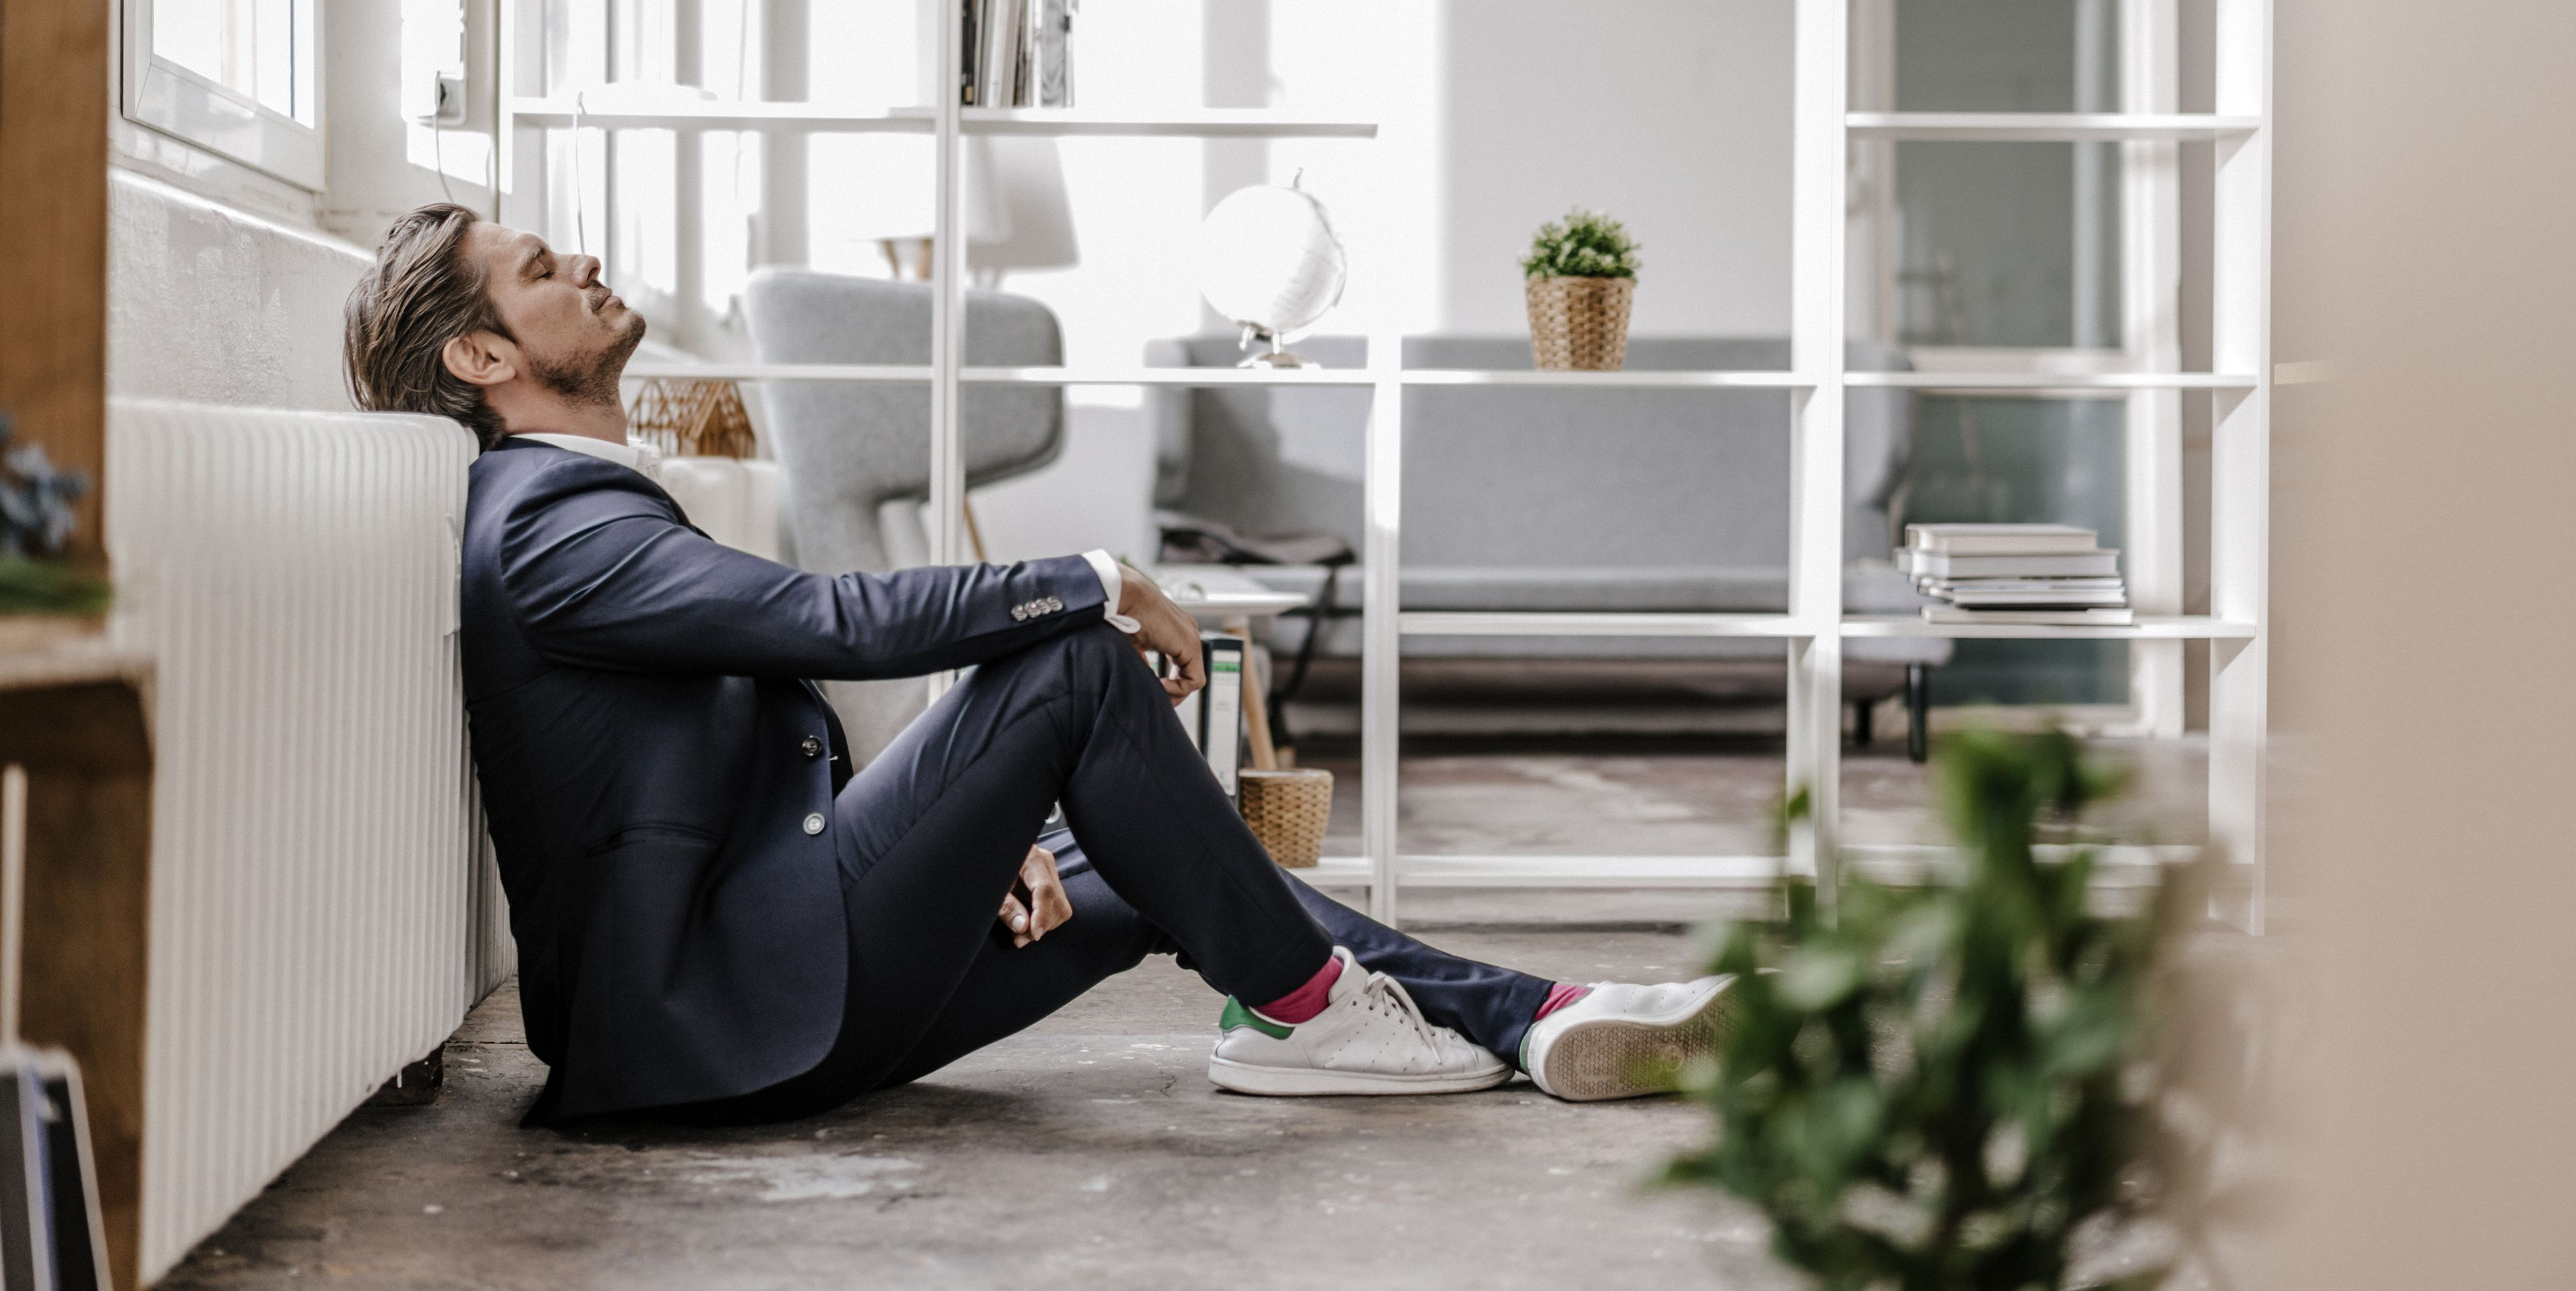 Exhausted businessman sitting on the floor